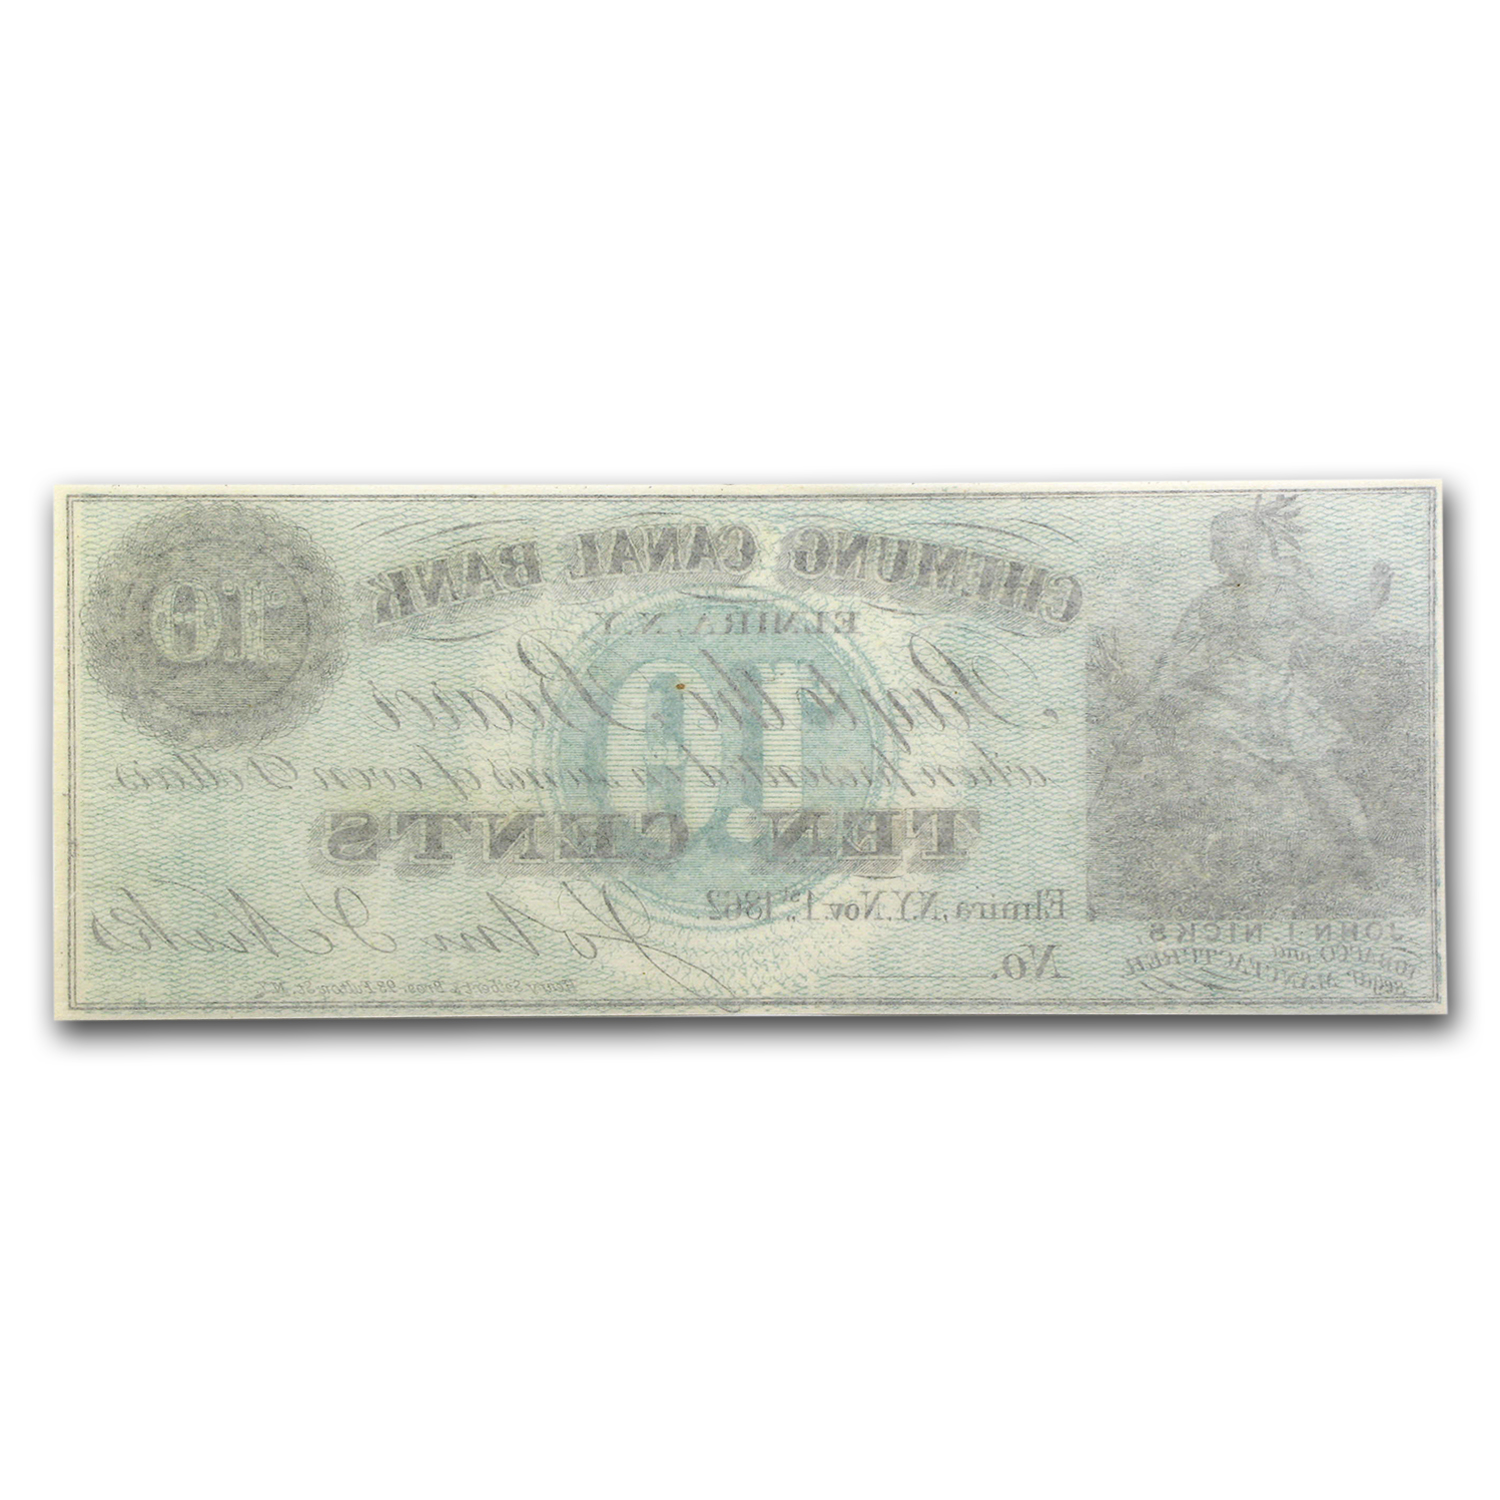 1862 Scrip of John Nicks, Elmira, NY 10 Cents CU